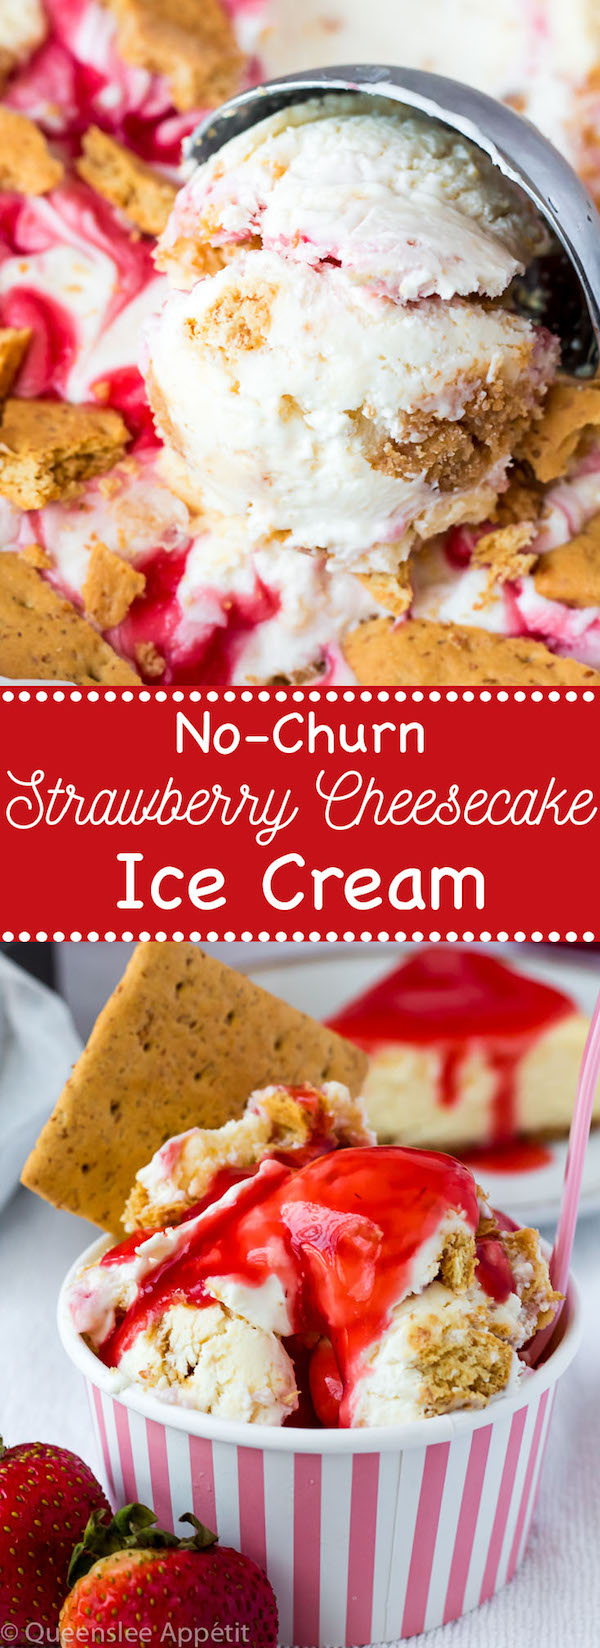 This No-Churn Strawberry Cheesecake Ice Cream consists of a cheesecake flavoured ice cream base that's loaded with cheesecake and graham cracker pieces and a swirl of sweet homemade strawberry sauce. This simple and delicious dessert just screams summer!